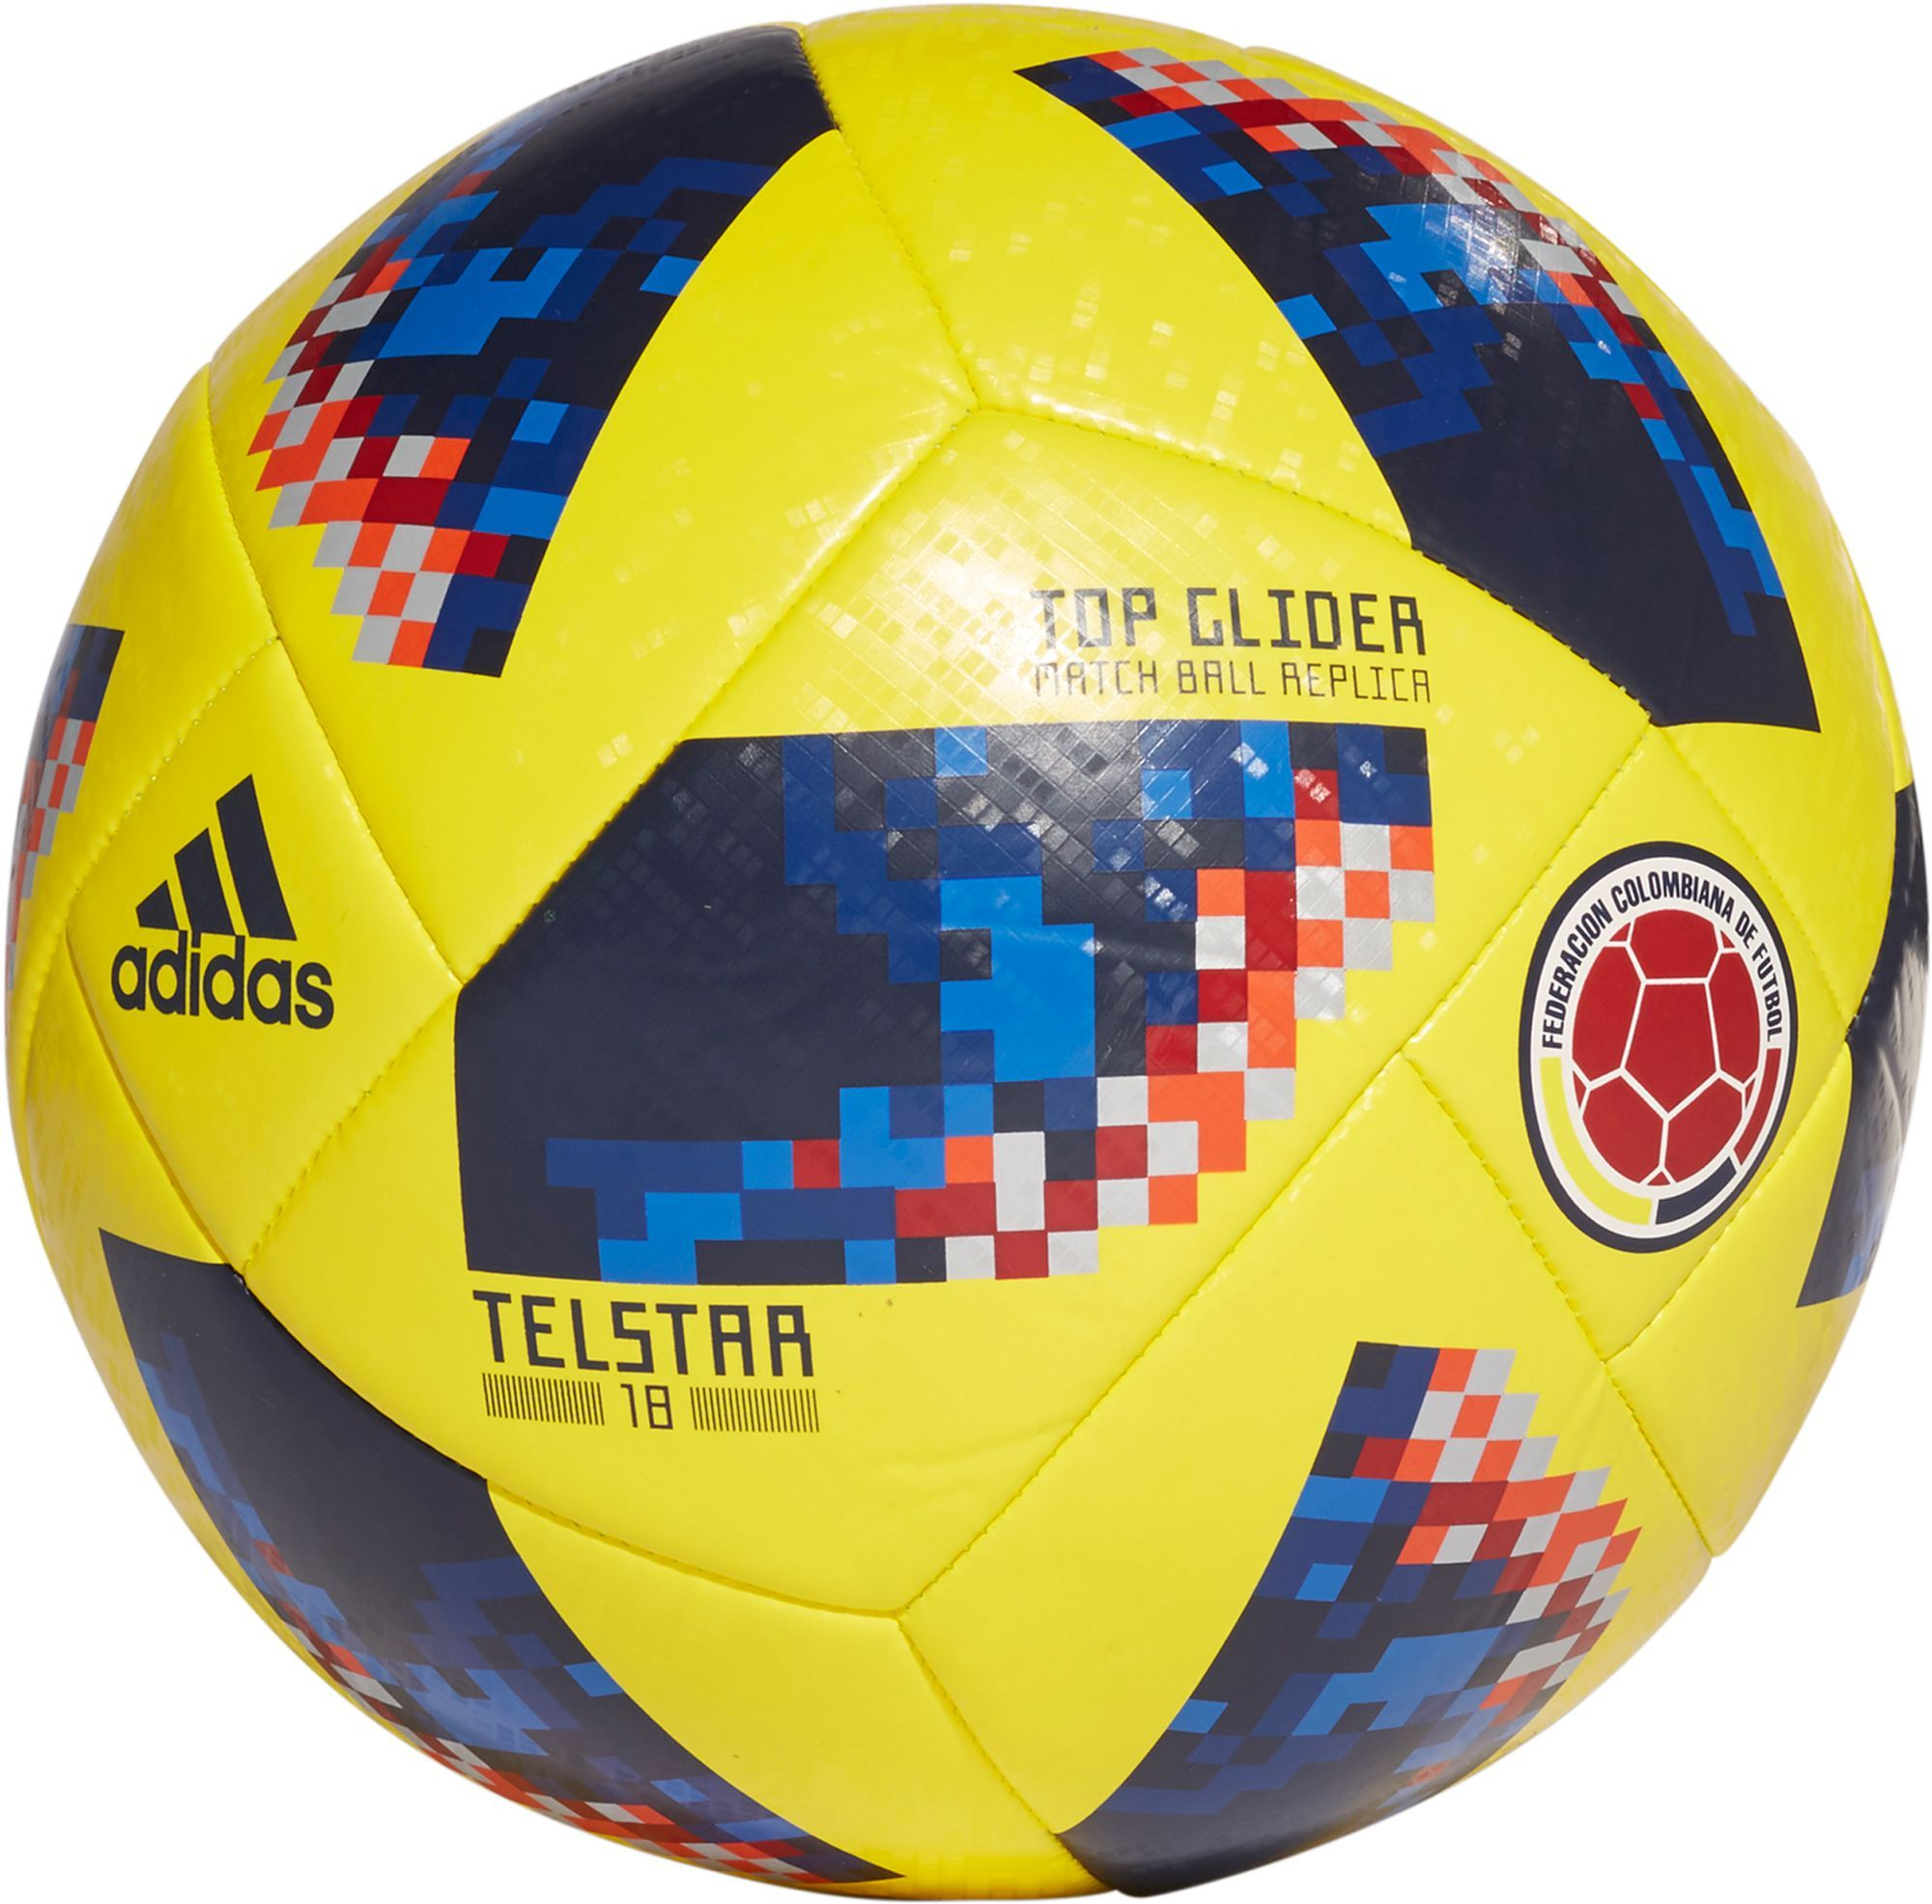 0dad3e88a adidas 2018 Fifa World Cup Russia Colombia Supporters Glider Soccer Ball,  Yellow